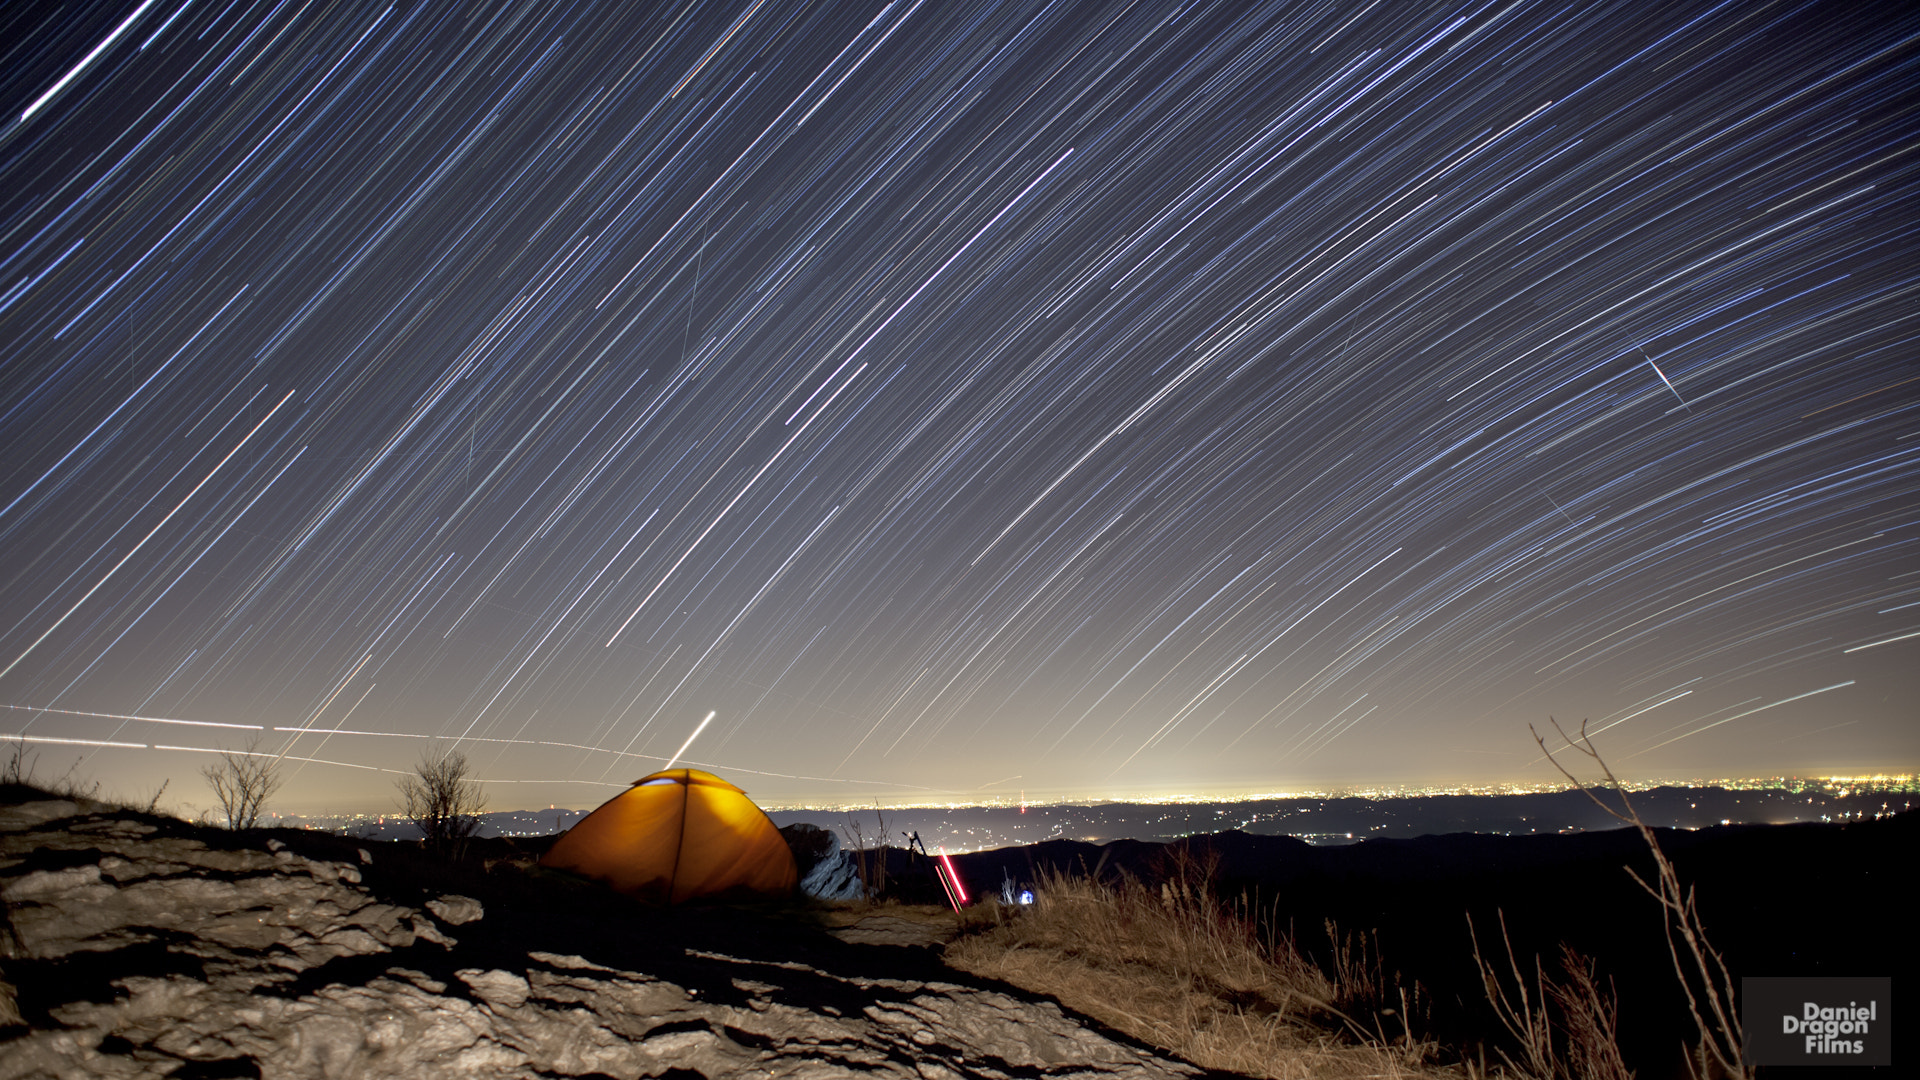 Photograph Geminid Startrails from Blue Ridge Parkway by Daniel Lowe on 500px